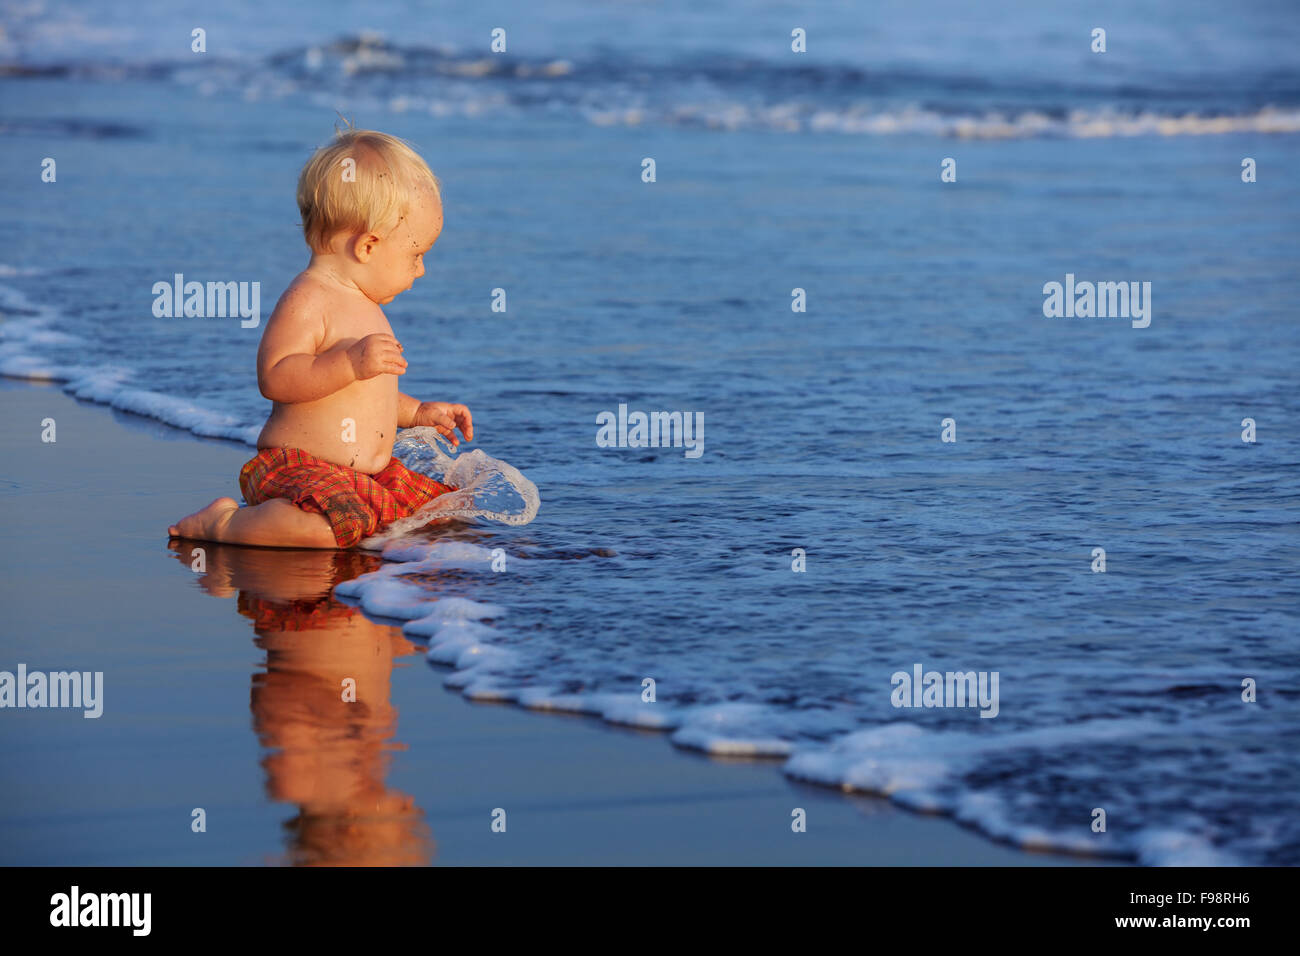 On sunset beach happy baby swimmer sit on black sand and look at sea surf with foam and splash for swimming in waves. - Stock Image